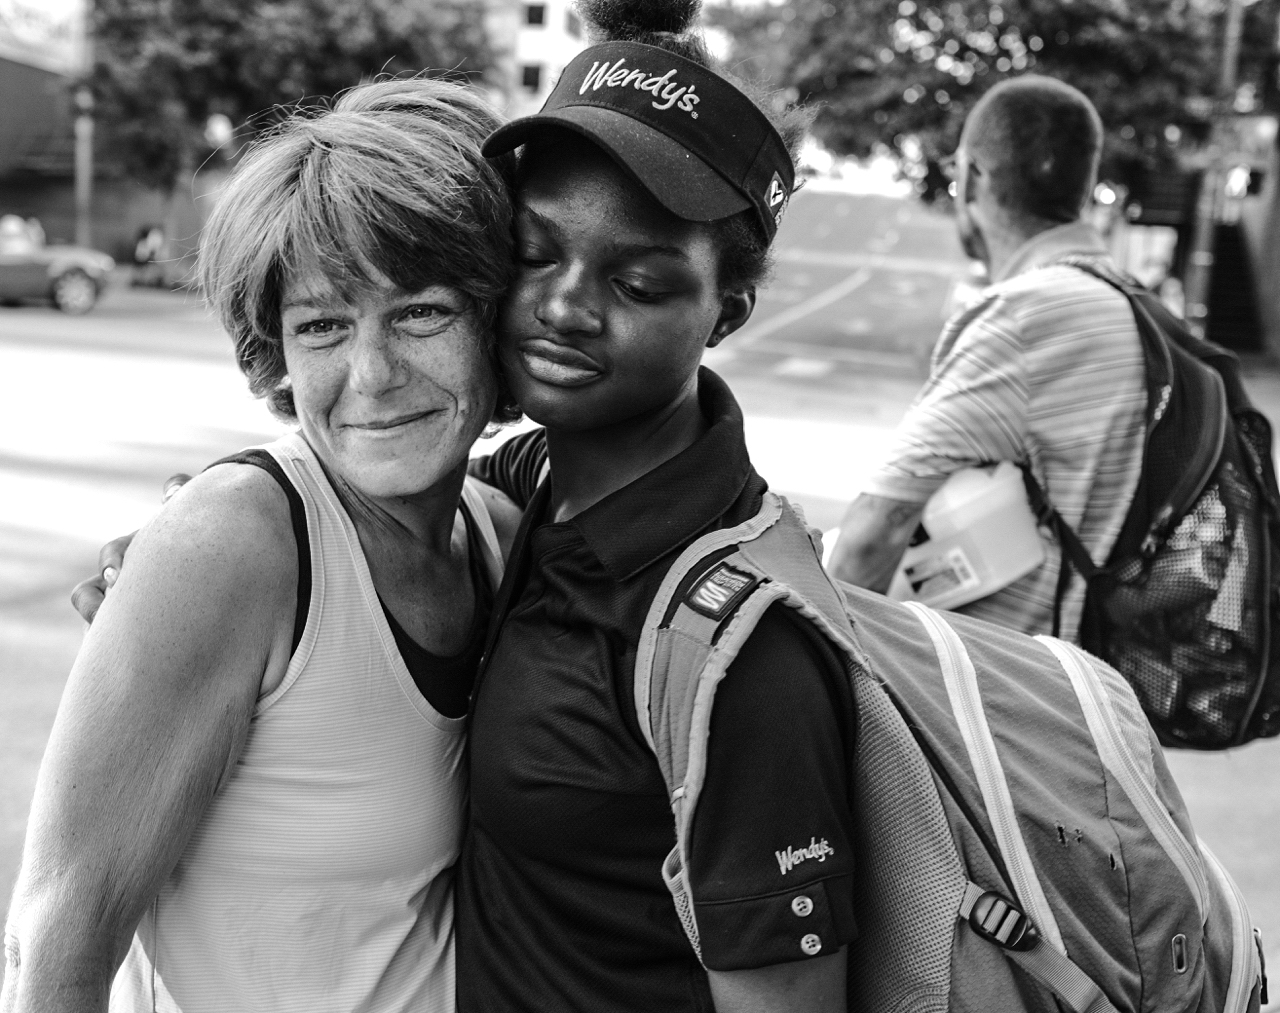 Elizabeth, left, lends her emotional support to 20-year-old Zakila Marina on Sixth Street in downtown Austin.